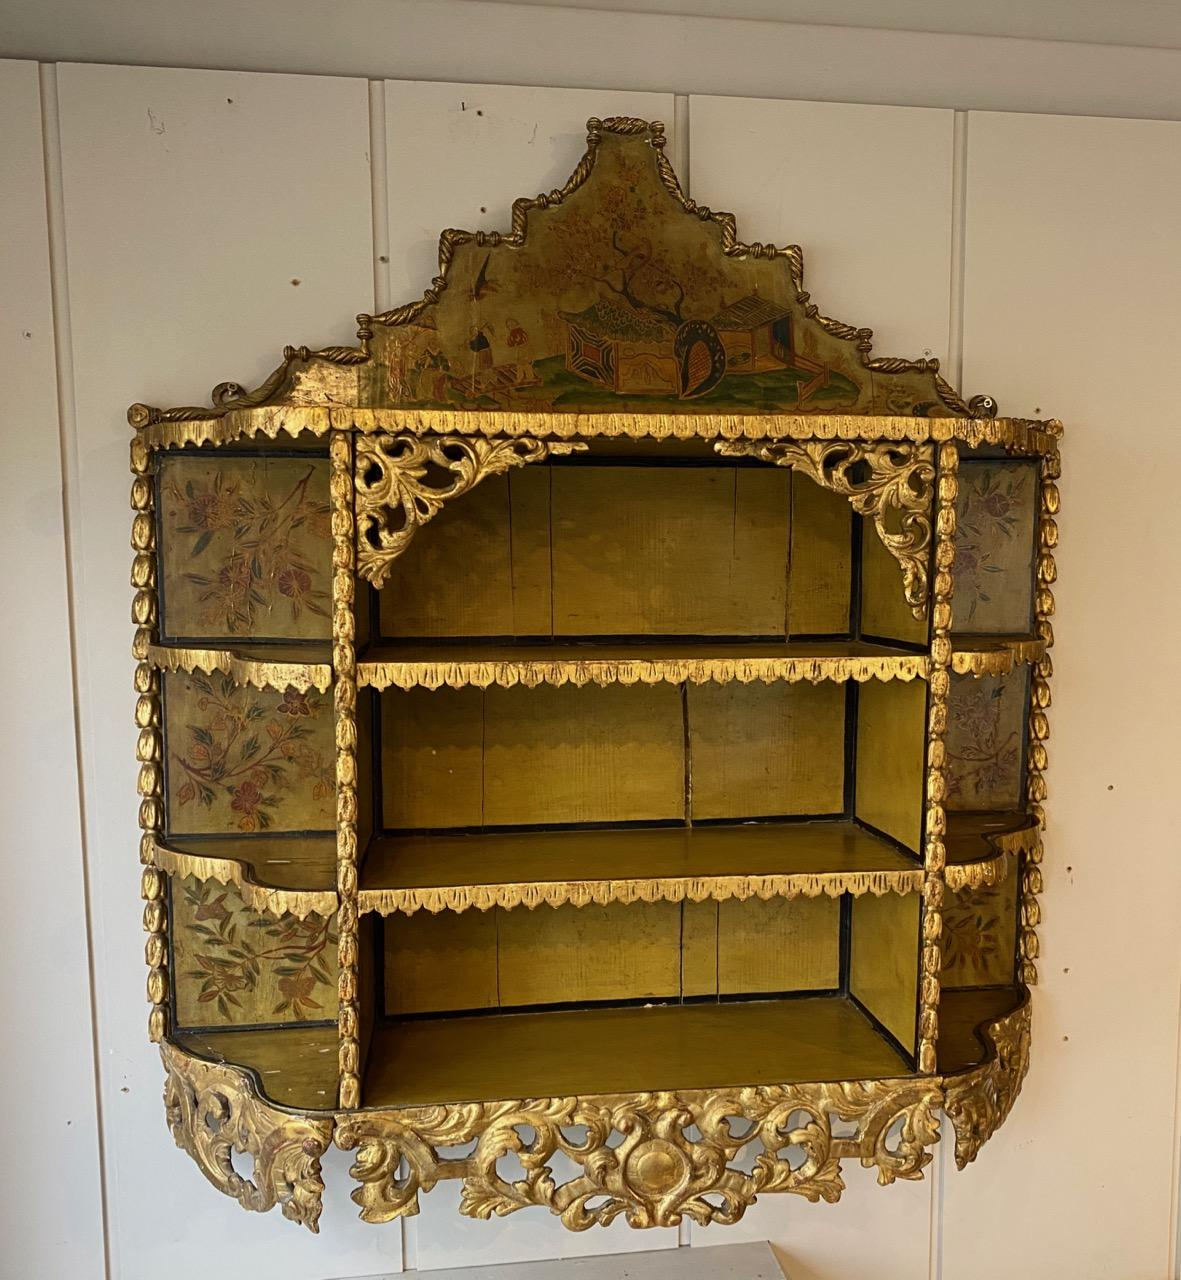 Chinoiserie Hanging Shelves